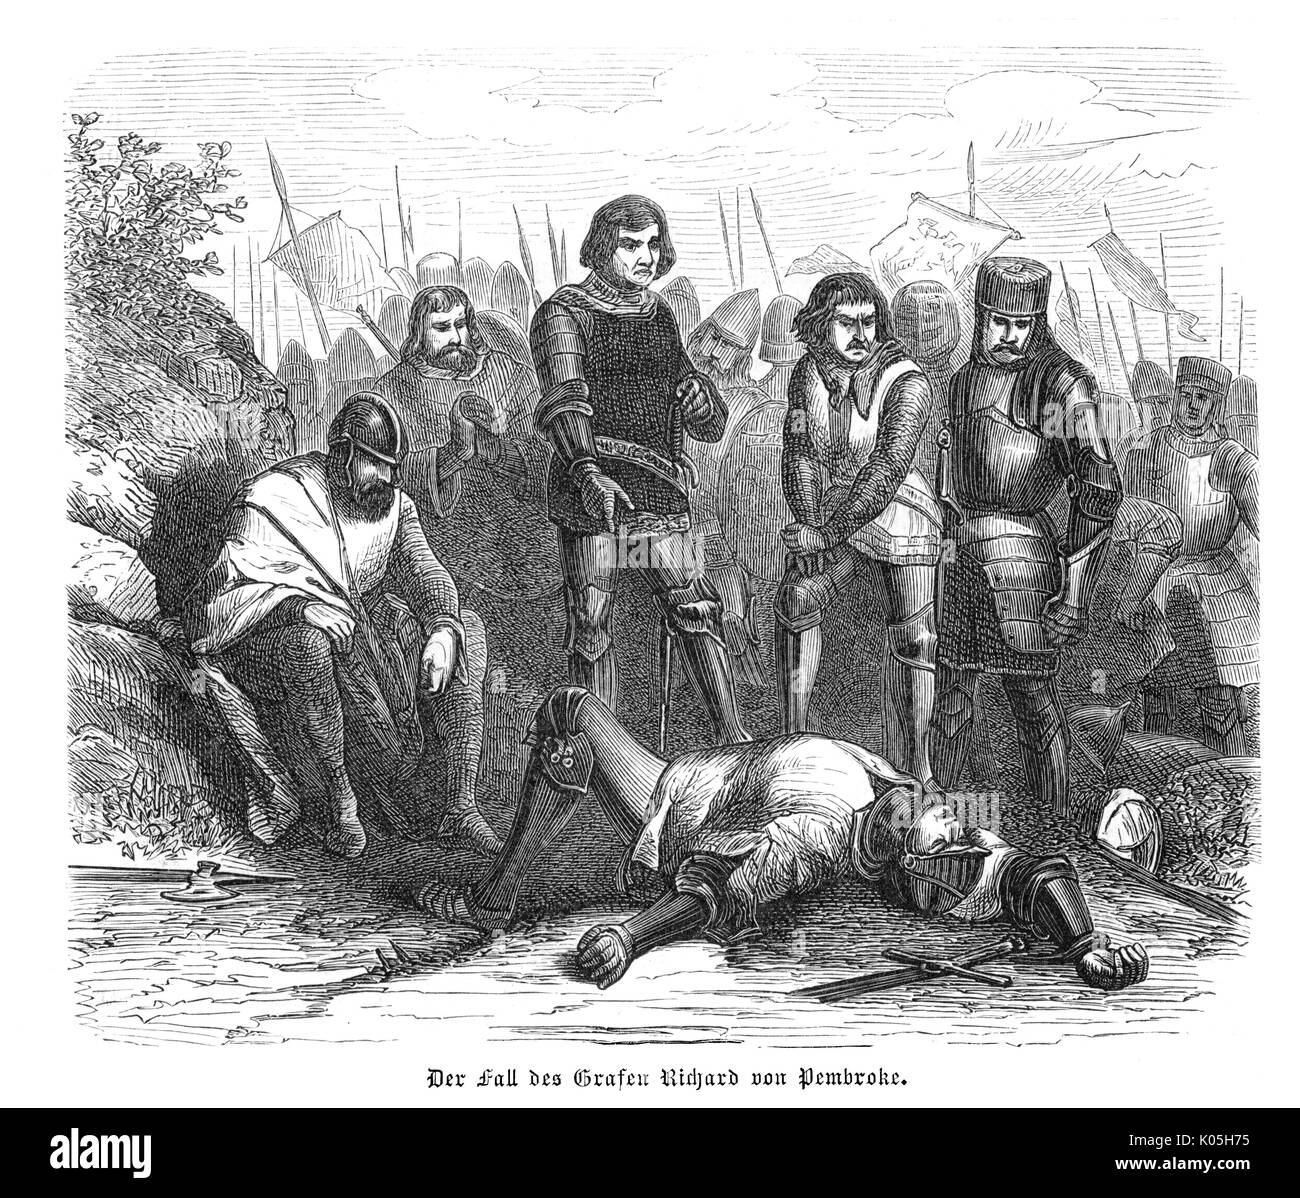 Richard, the 3rd earl of Pembroke, is killed at Kildare        Date: 1234 - Stock Image